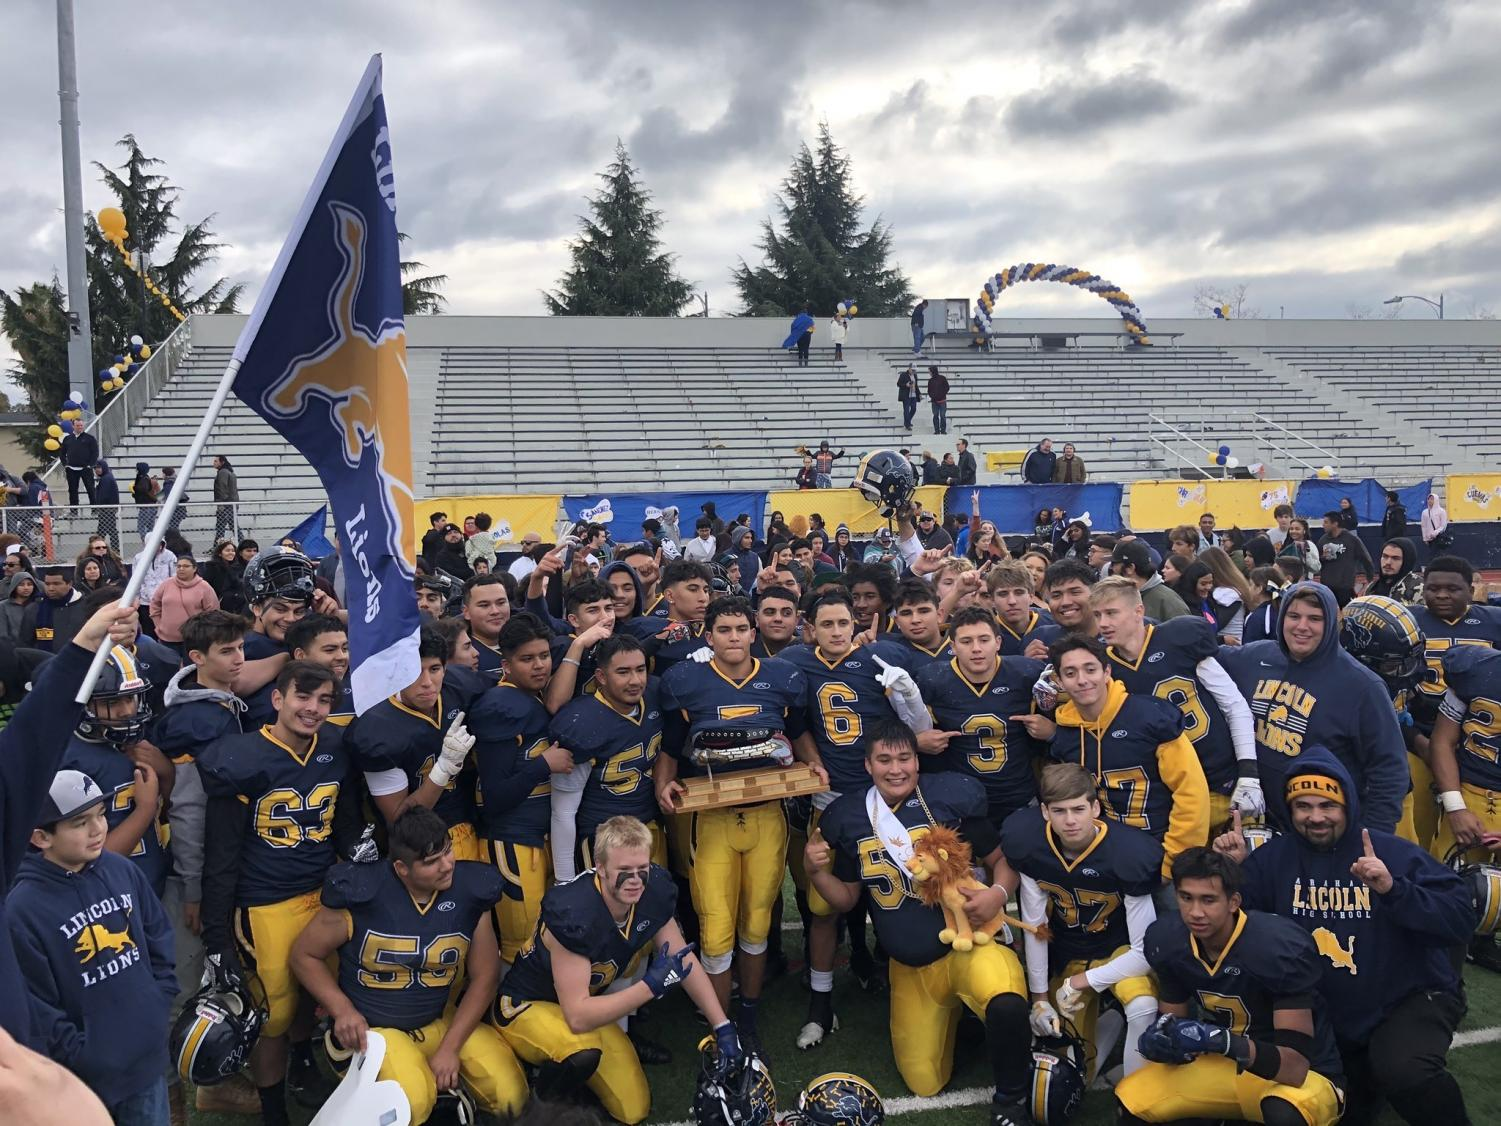 Lions celebrating after their win against San Jose High School with the big bone trophy. (Adrian Uribe)